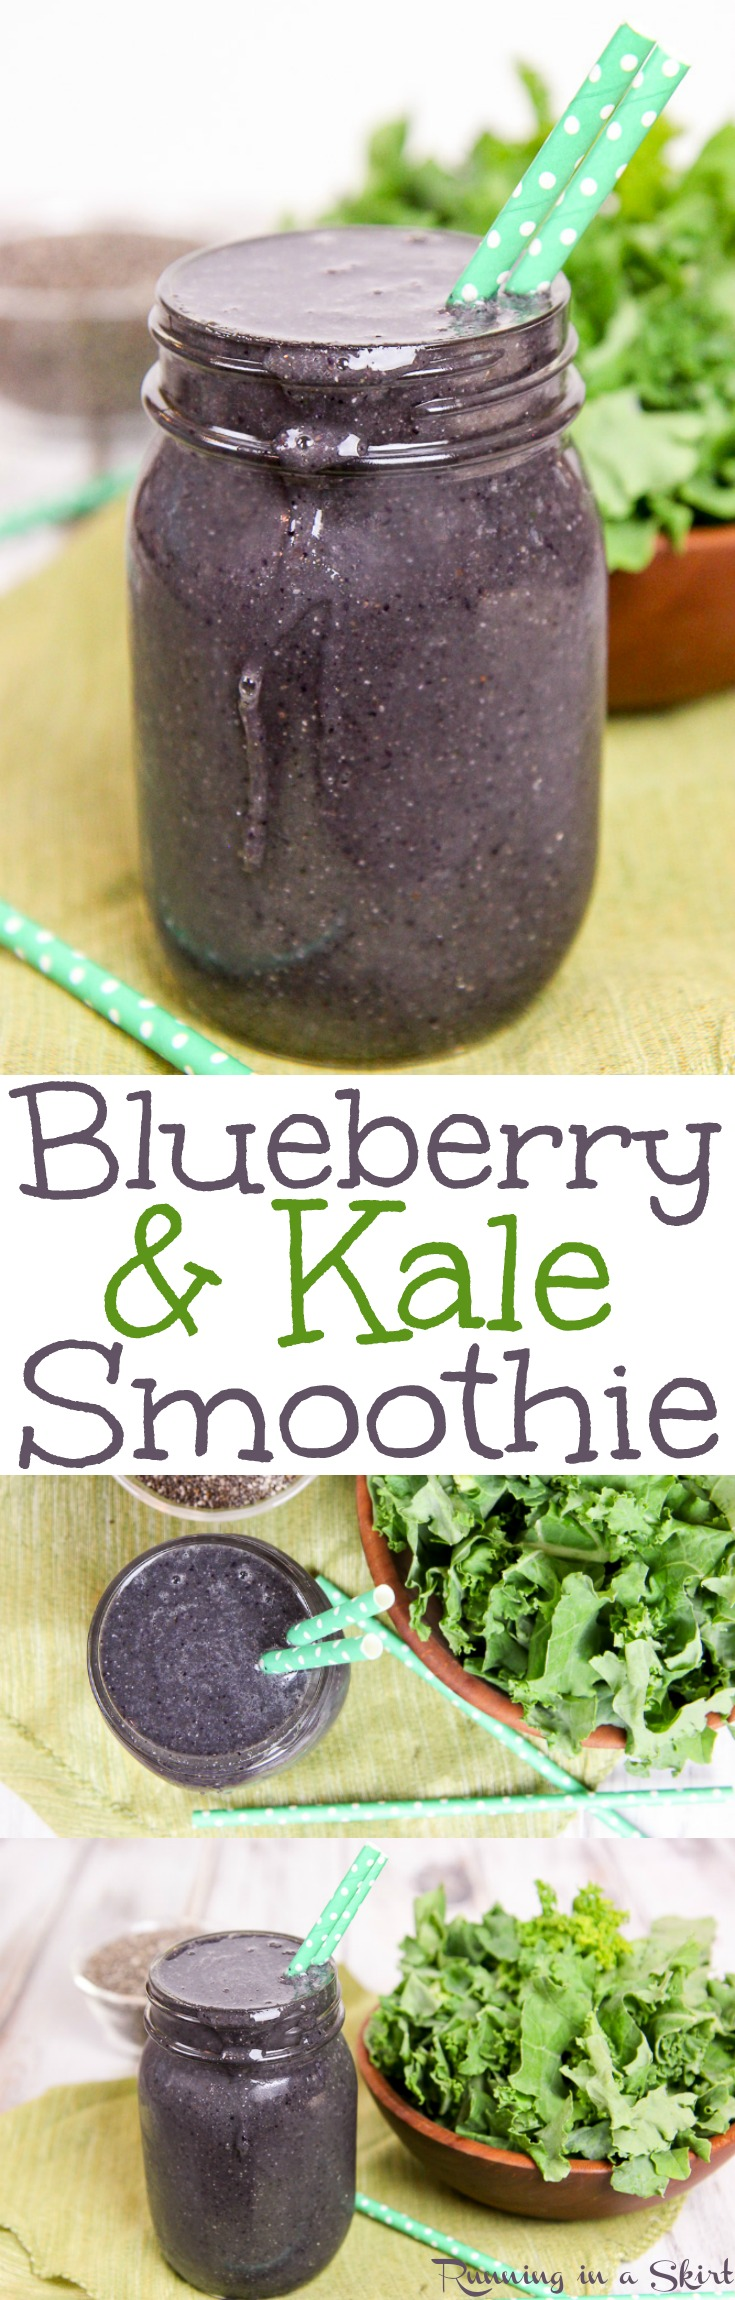 Kale and Blueberry Smoothie recipe.  A sweet green smoothie with chia seeds and greens.  Includes a frozen banana to make it creamy.  Perfect for breakfast or a snack.  Healthy, fast, vegan, gluten free and clean eating! / Running in a Skirt